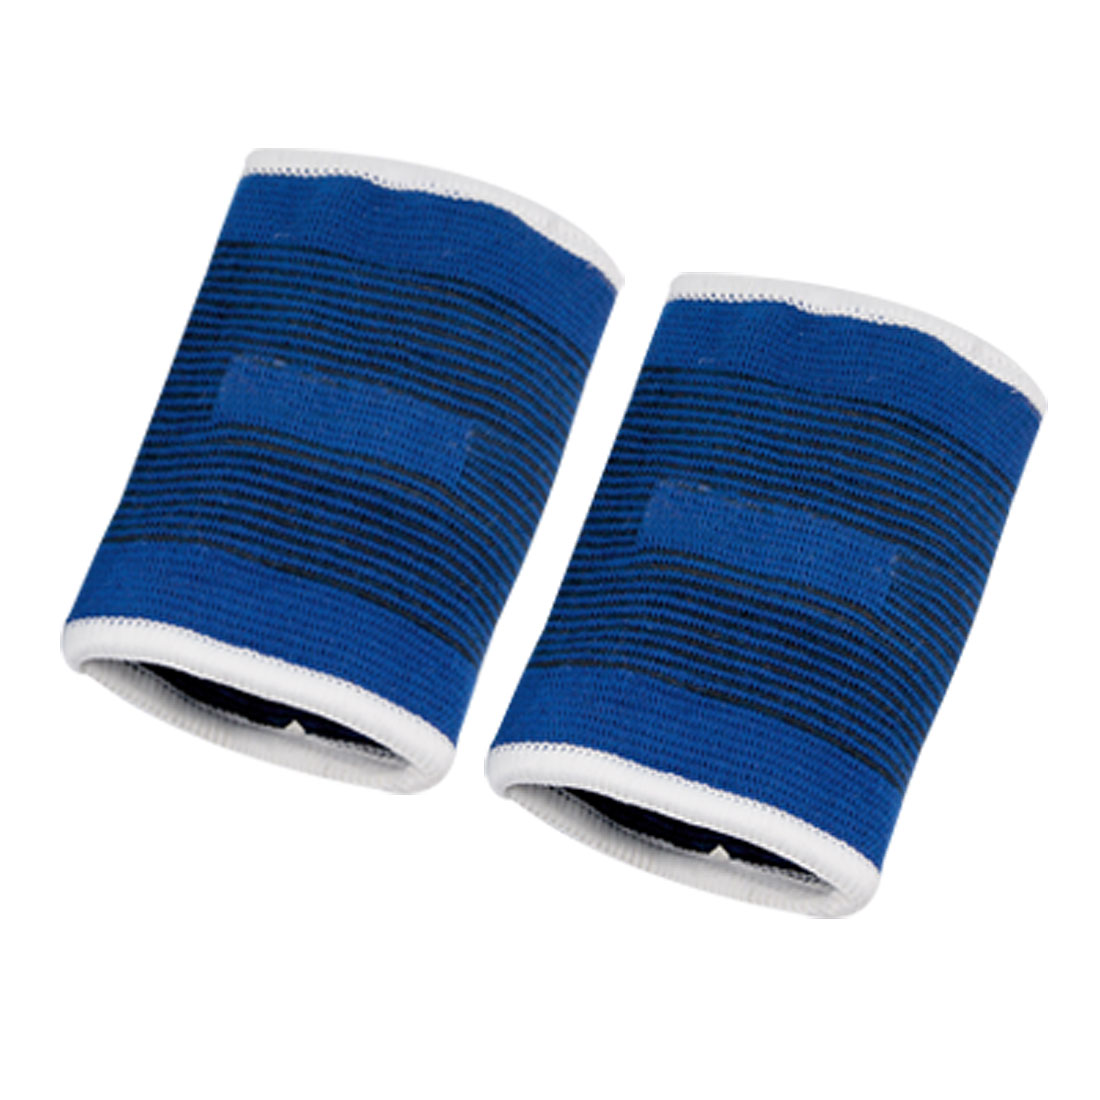 Athletic Tennis Elastic Fabric Wrist Sweatbands Band Brace Support Blue 2 Pcs